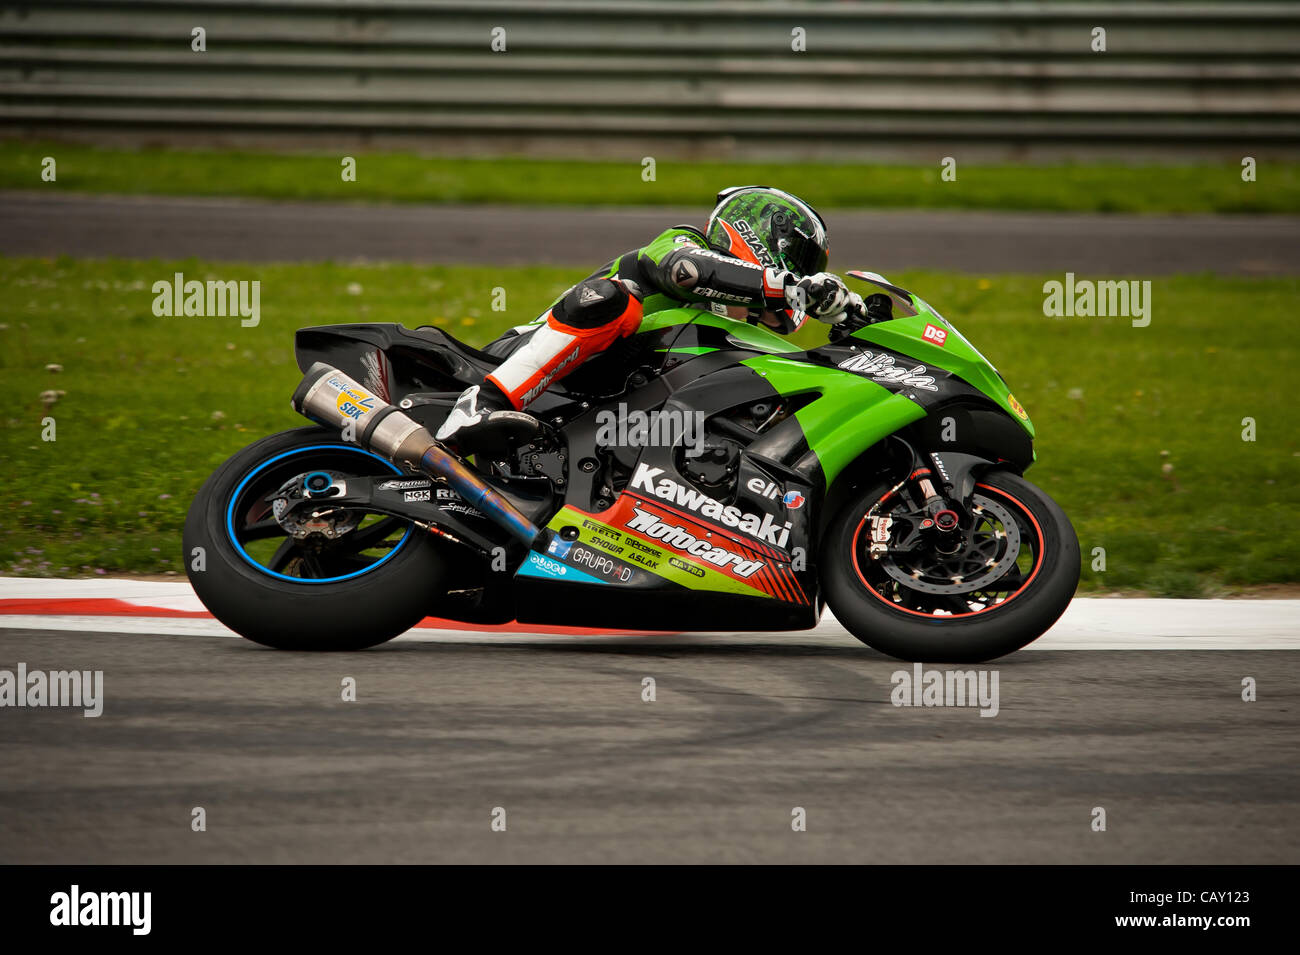 Superbike Monza  66 Tom Sykes GBR Kawasaki ZX-10R Kawasaki Racing Team - Stock Image